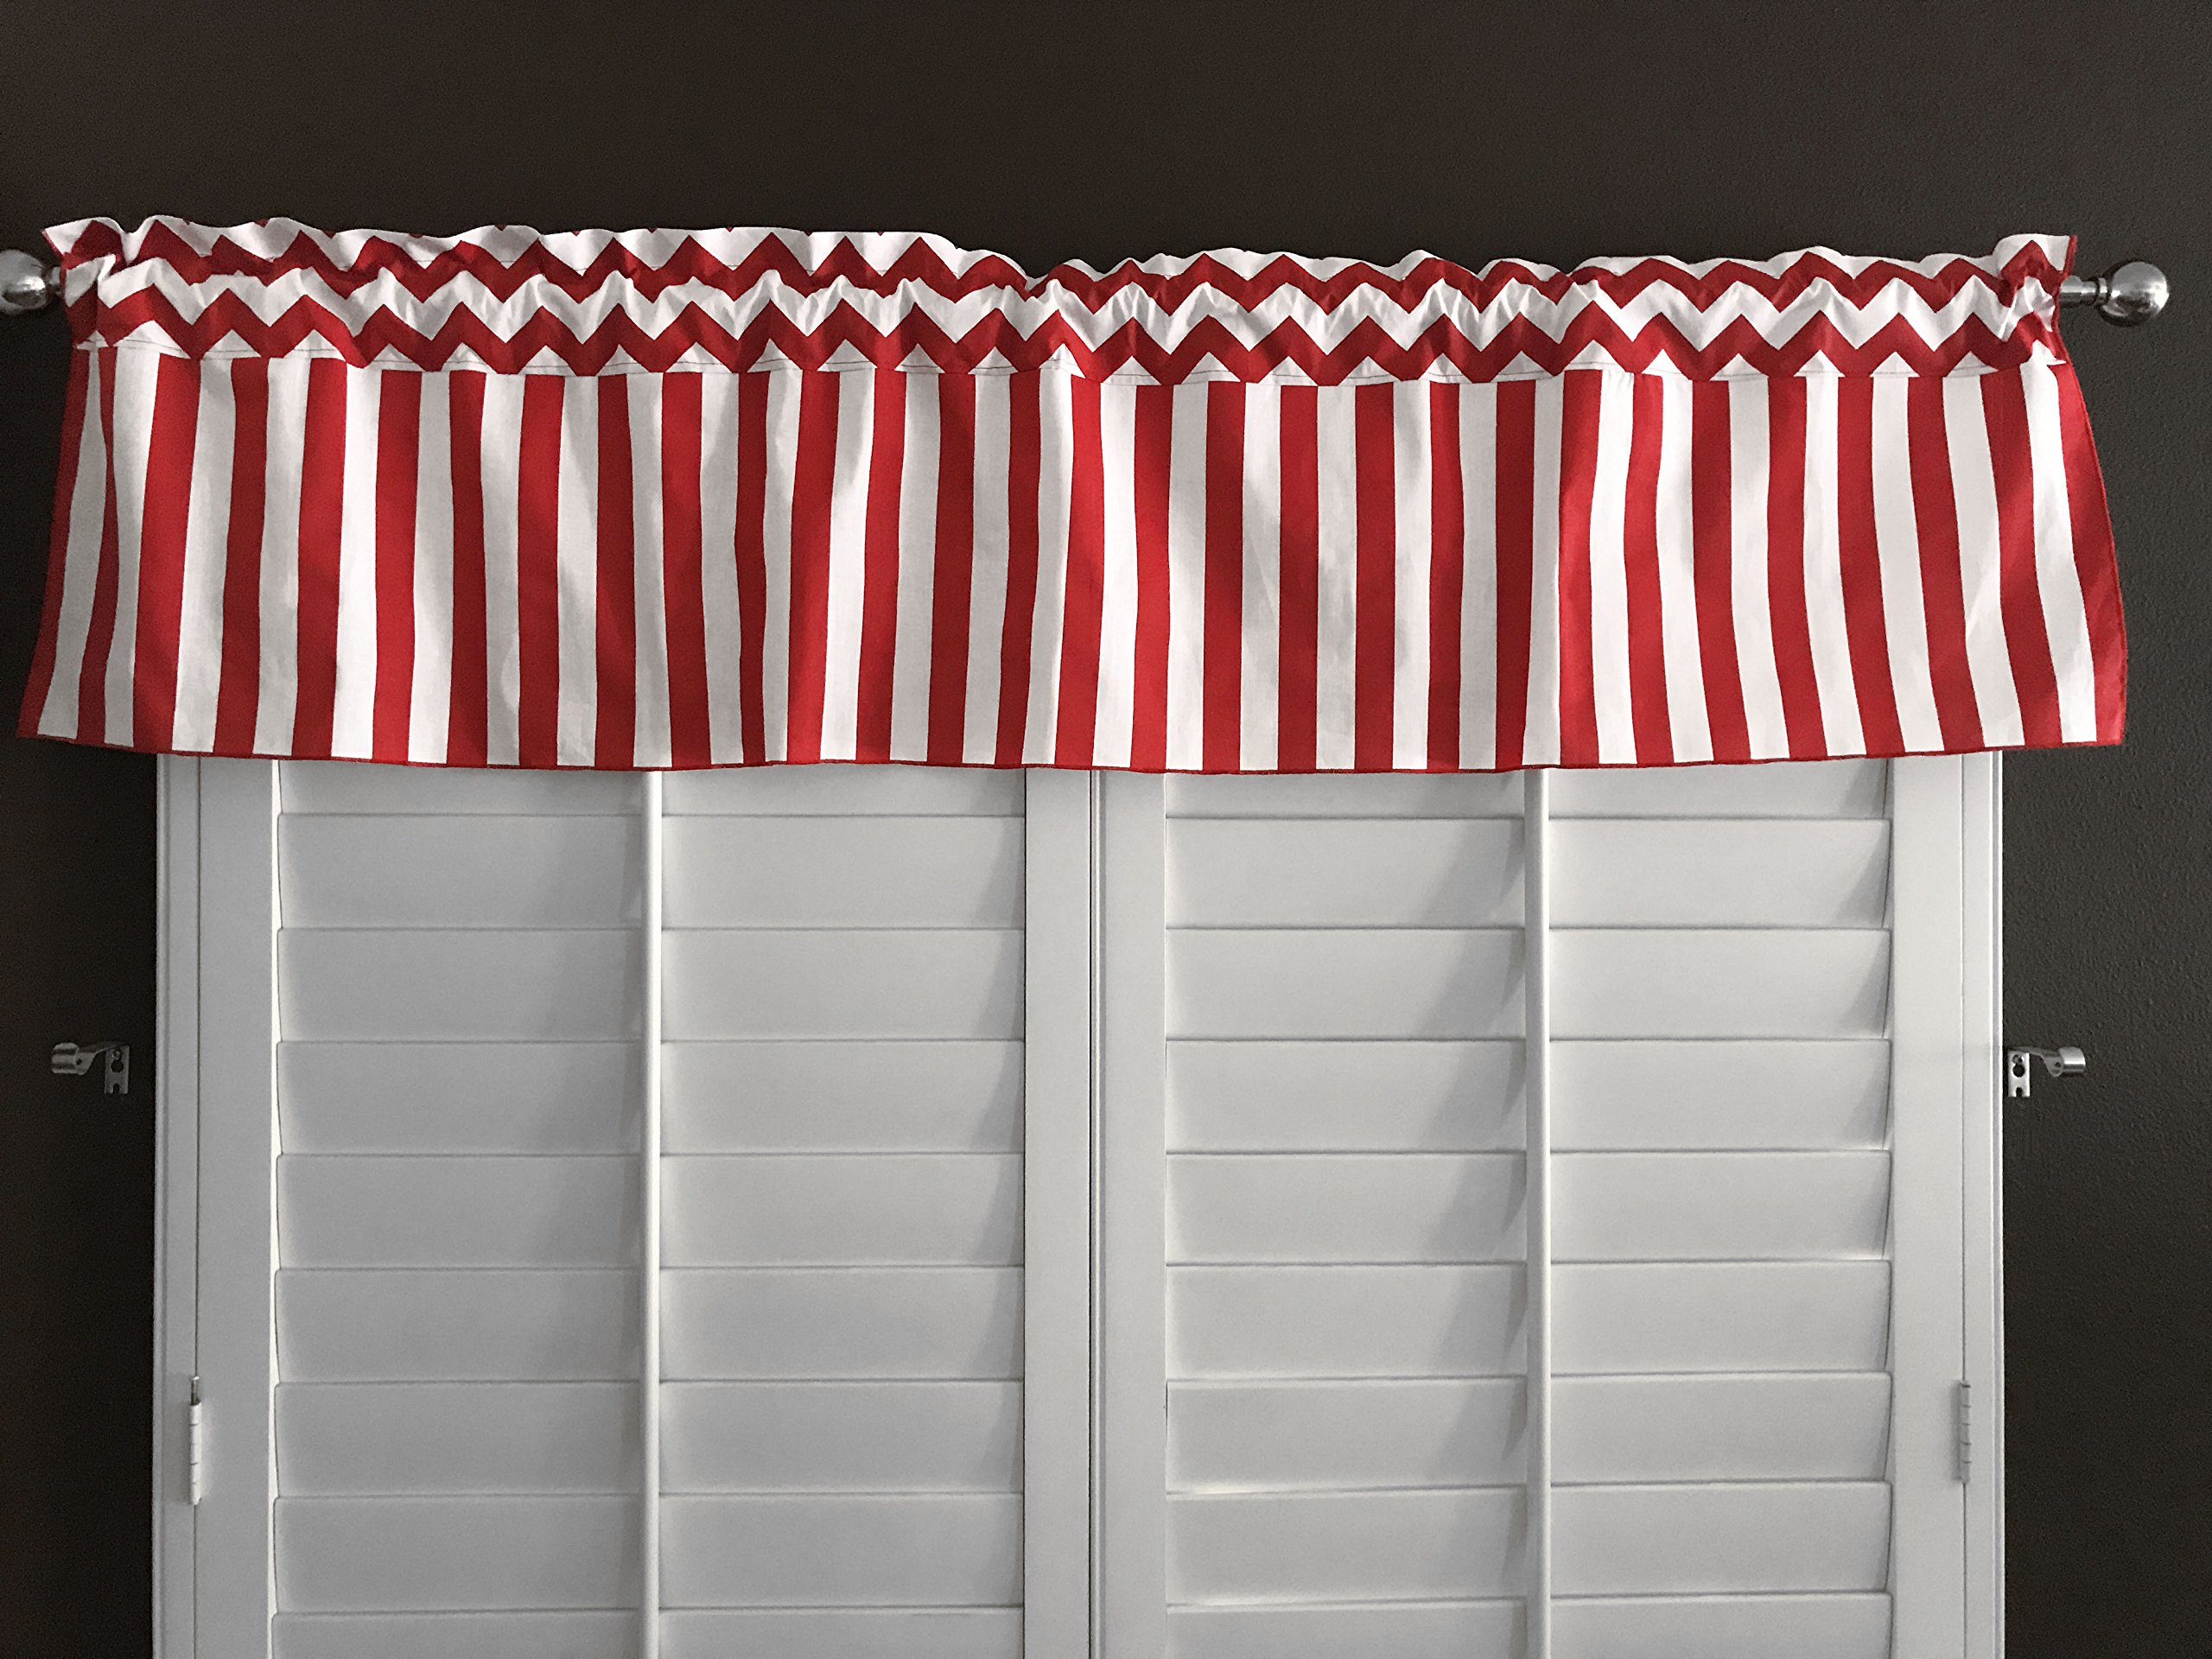 Zen Creative Designs Red Chevron Rain Cotton Stripes Window Valance 58 Inch Wide (28'' Tall) by Zen Creative Designs